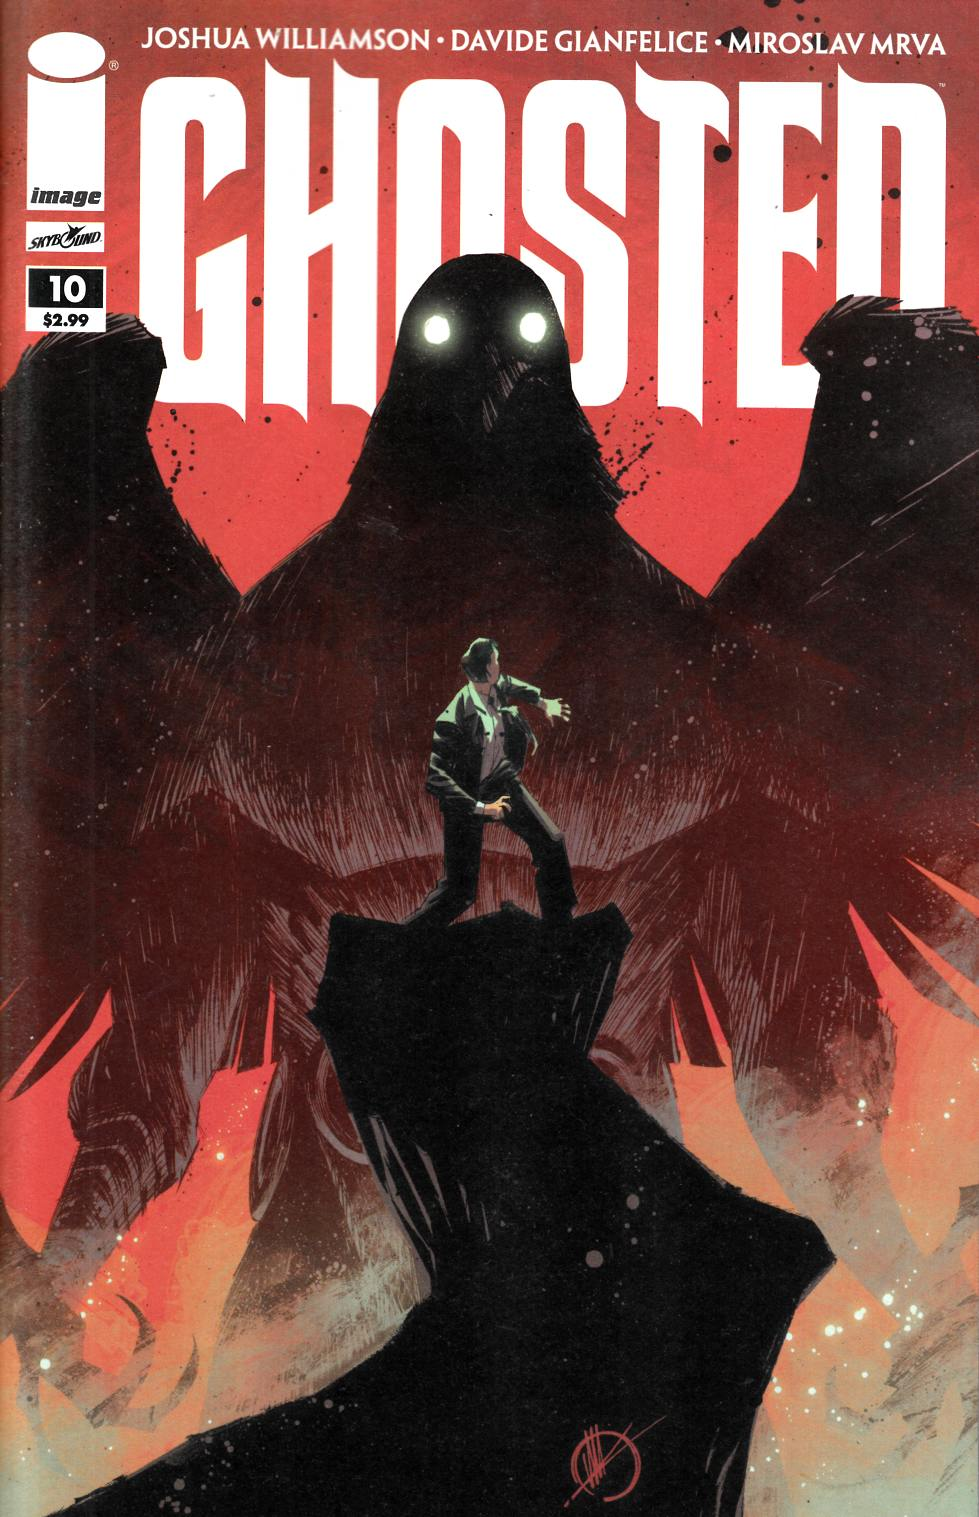 Ghosted #10 [Image Comic] THUMBNAIL